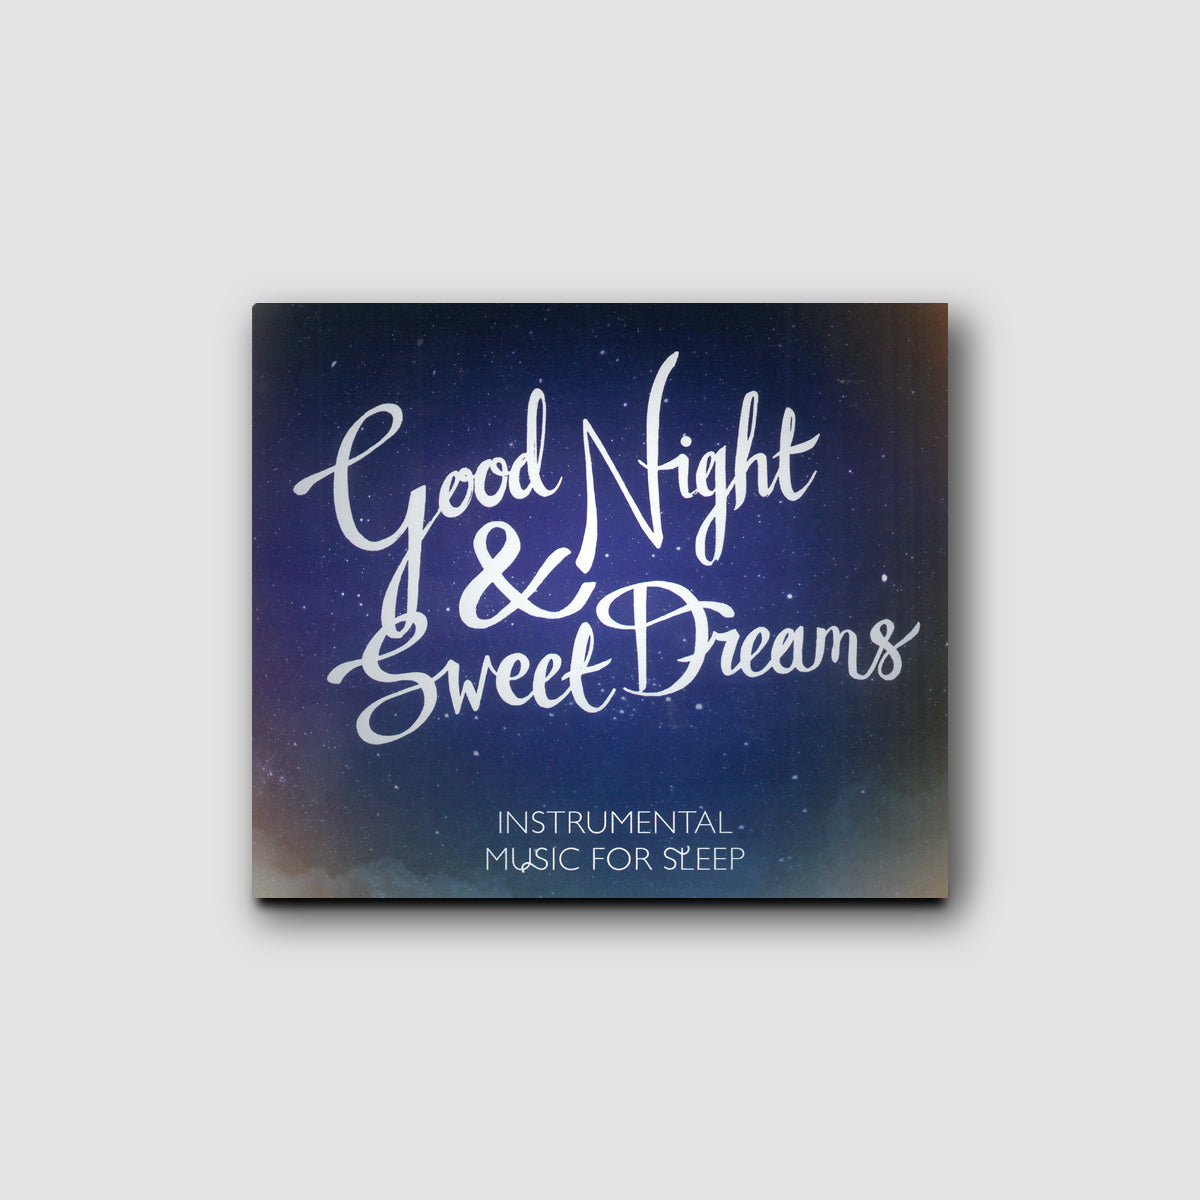 Good Night & Sweet Dreams - Instrumental Music for Sleep CD